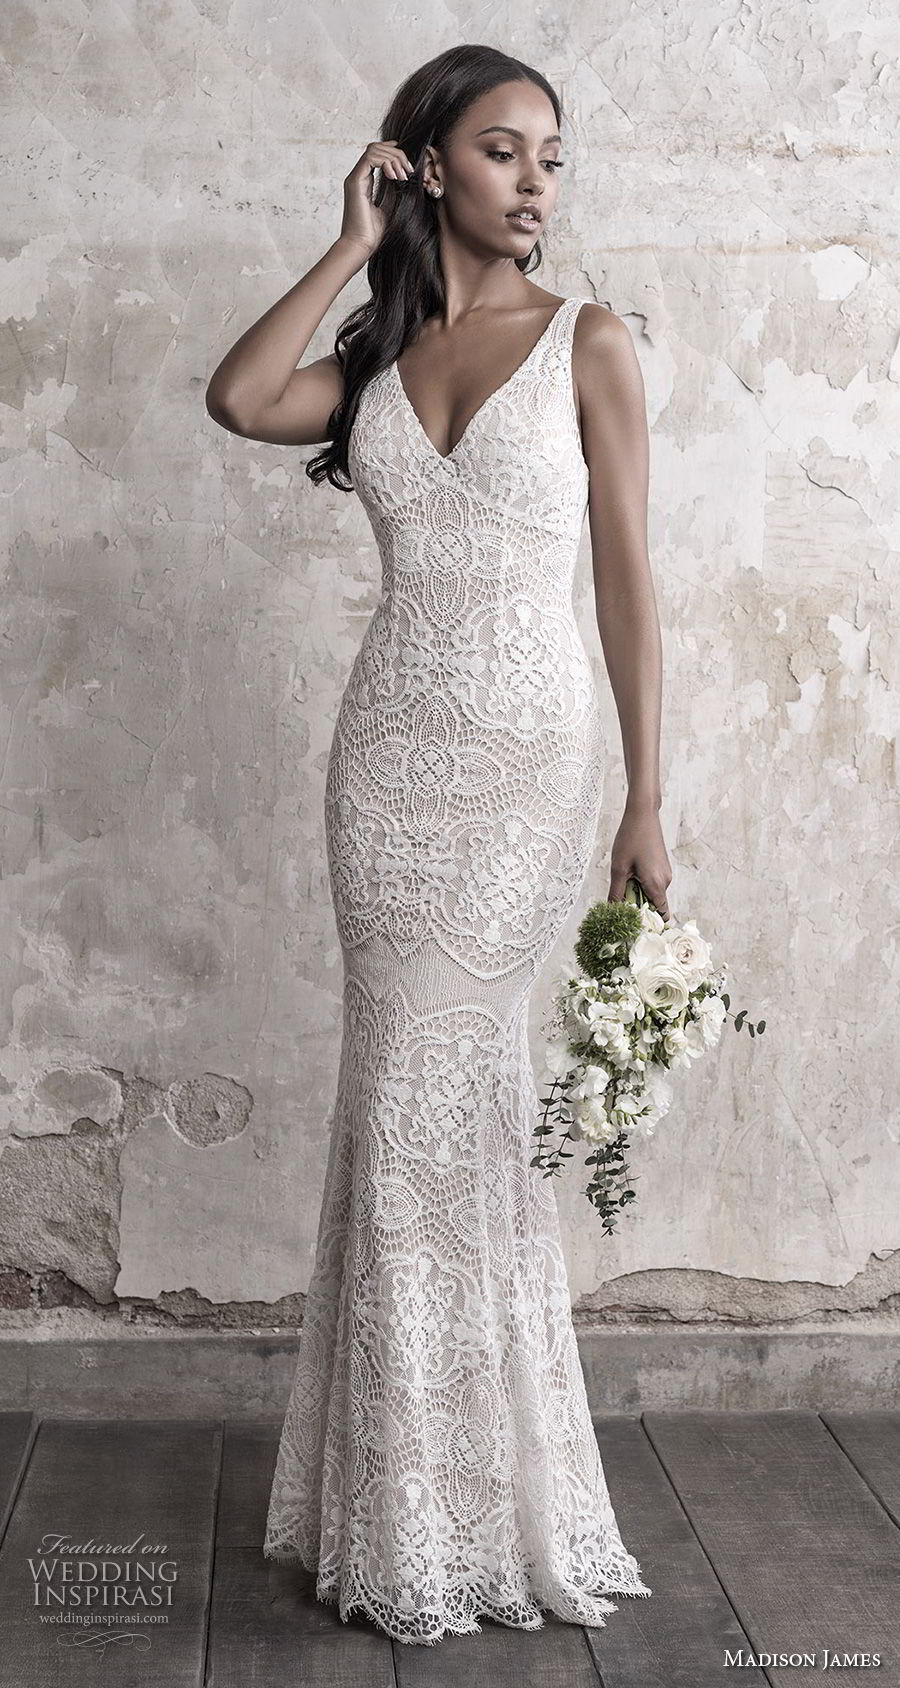 madison james fall 2018 bridal sleeveless with strap v neck full embellishment elegant fit and flare sheath wedding dress open back chapel train (12) mv